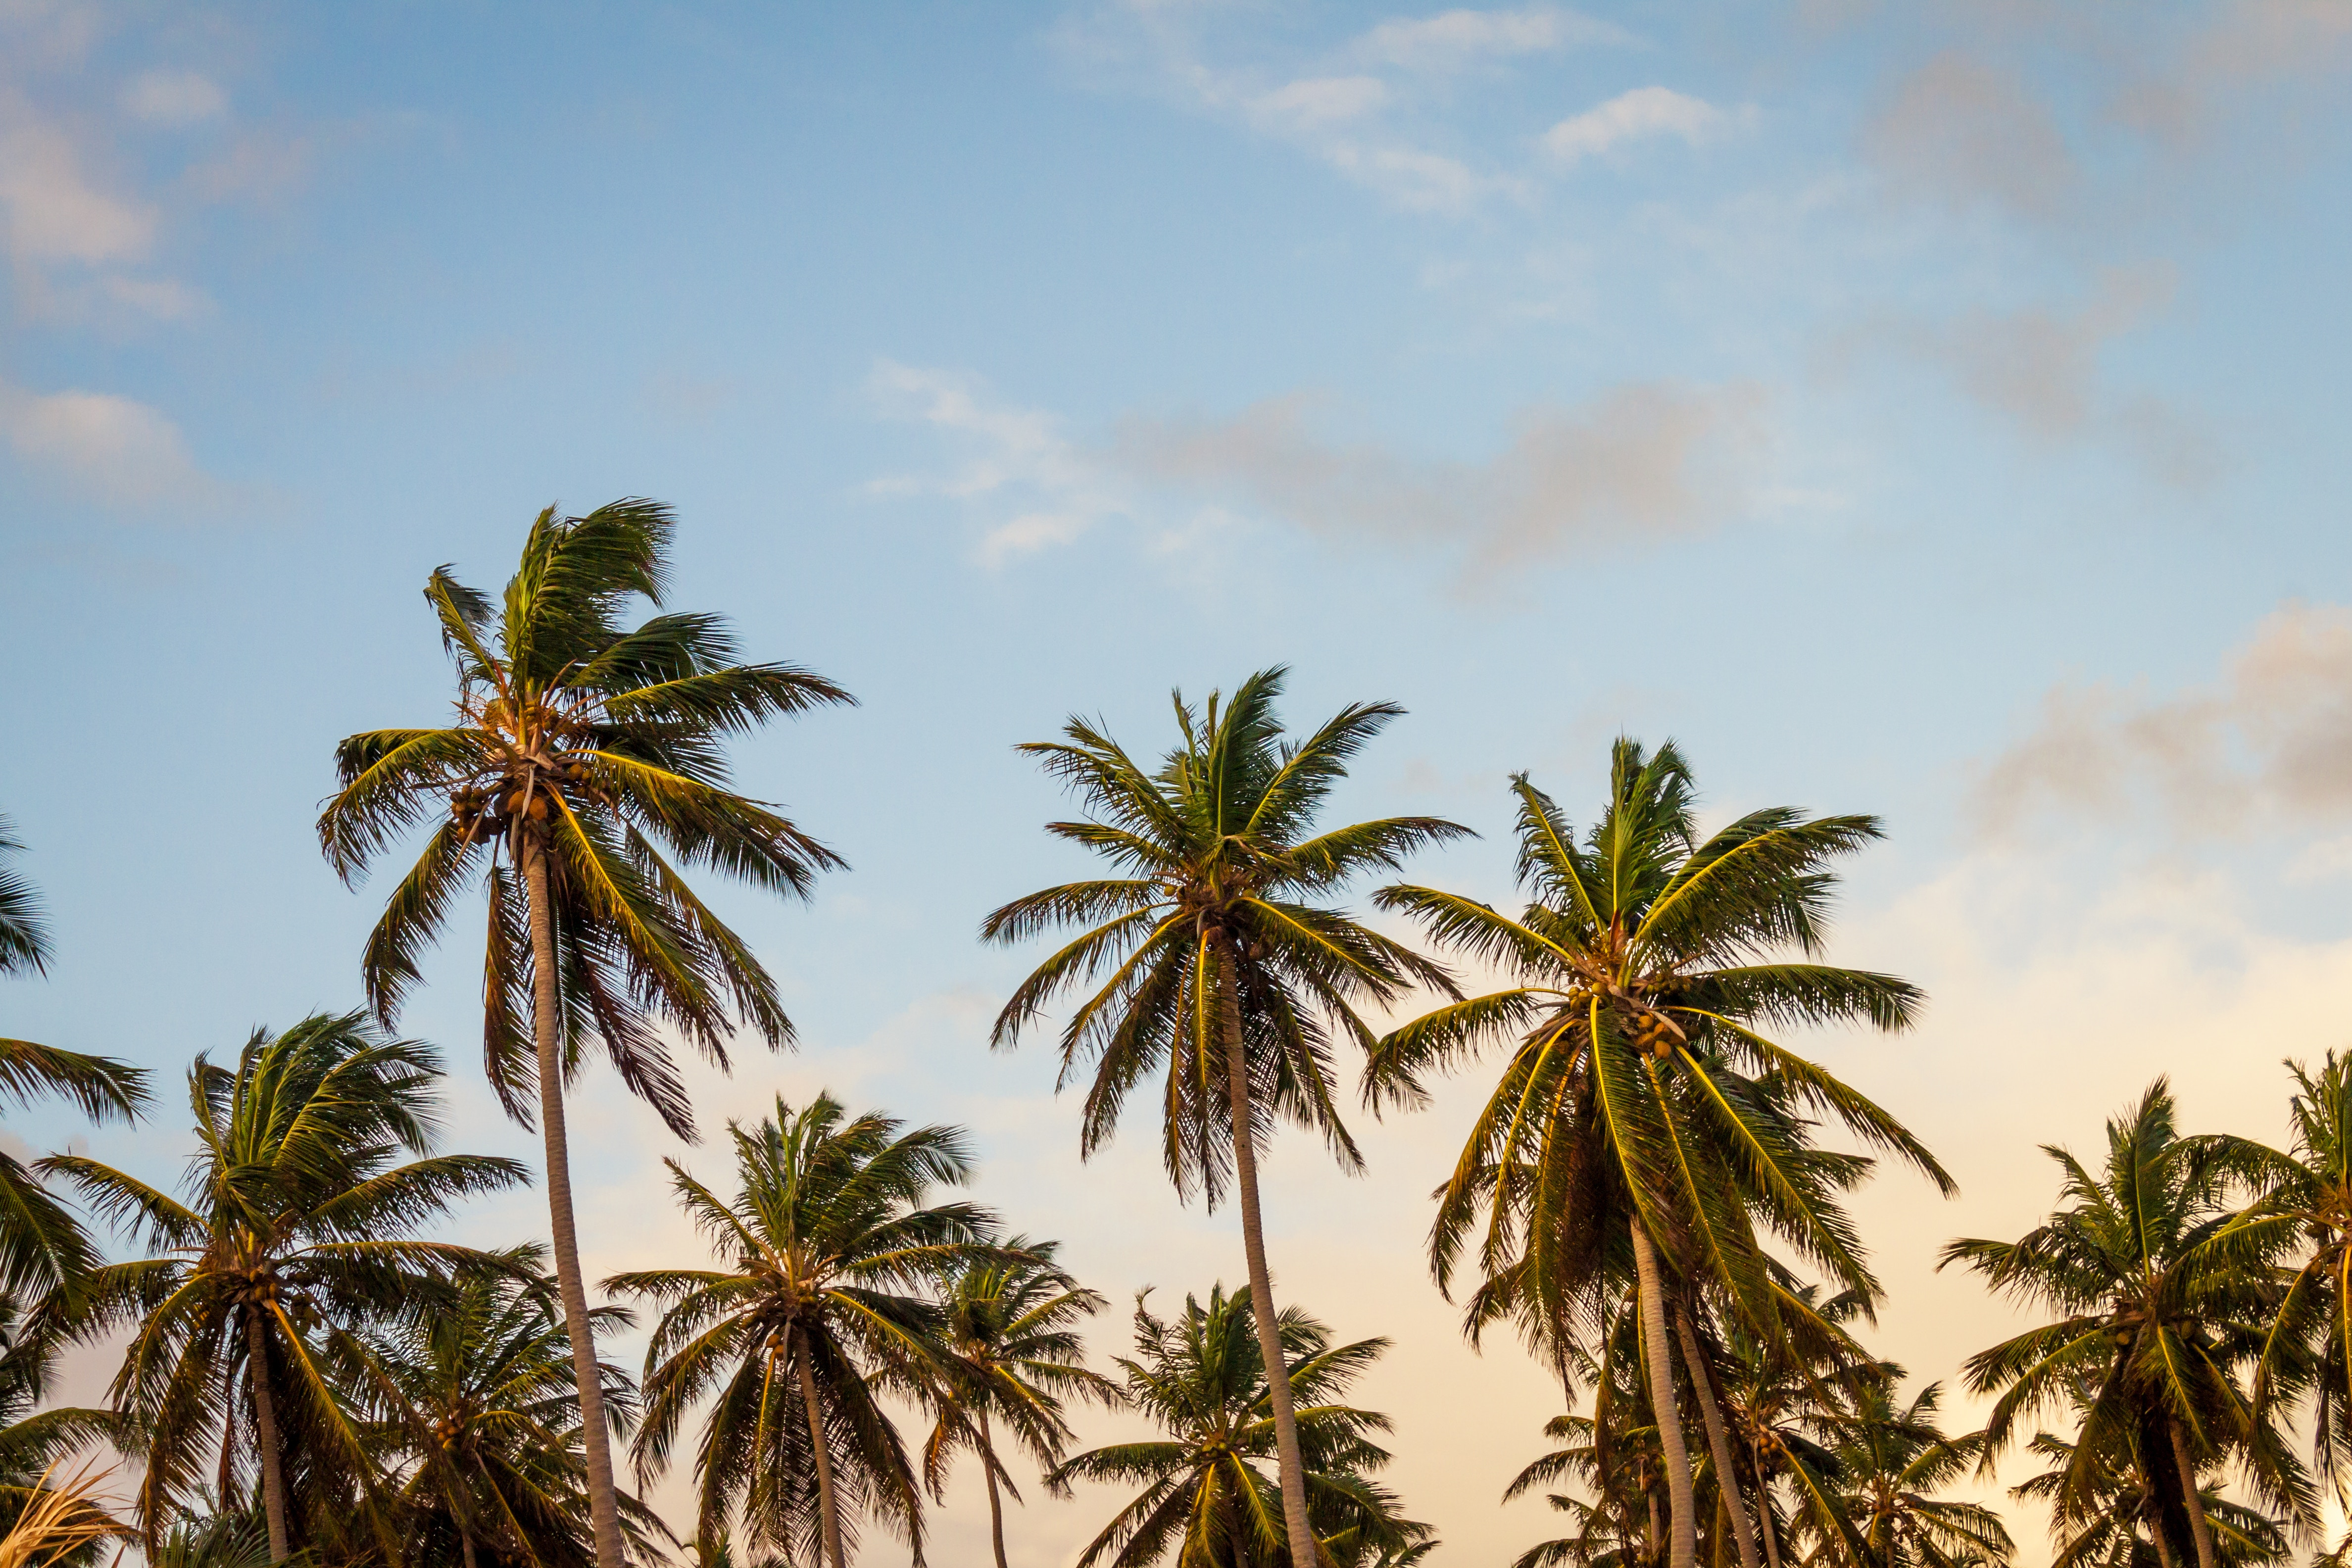 Free Download 5374379 4752x3168 Tropical Holiday Palm Tree Tree Coconut 4752x3168 For Your Desktop Mobile Tablet Explore 61 Holiday Desktop Background Free Holiday Wallpaper Christmas Desktop Wallpaper Christmas Desktop Free Holiday Wallpaper